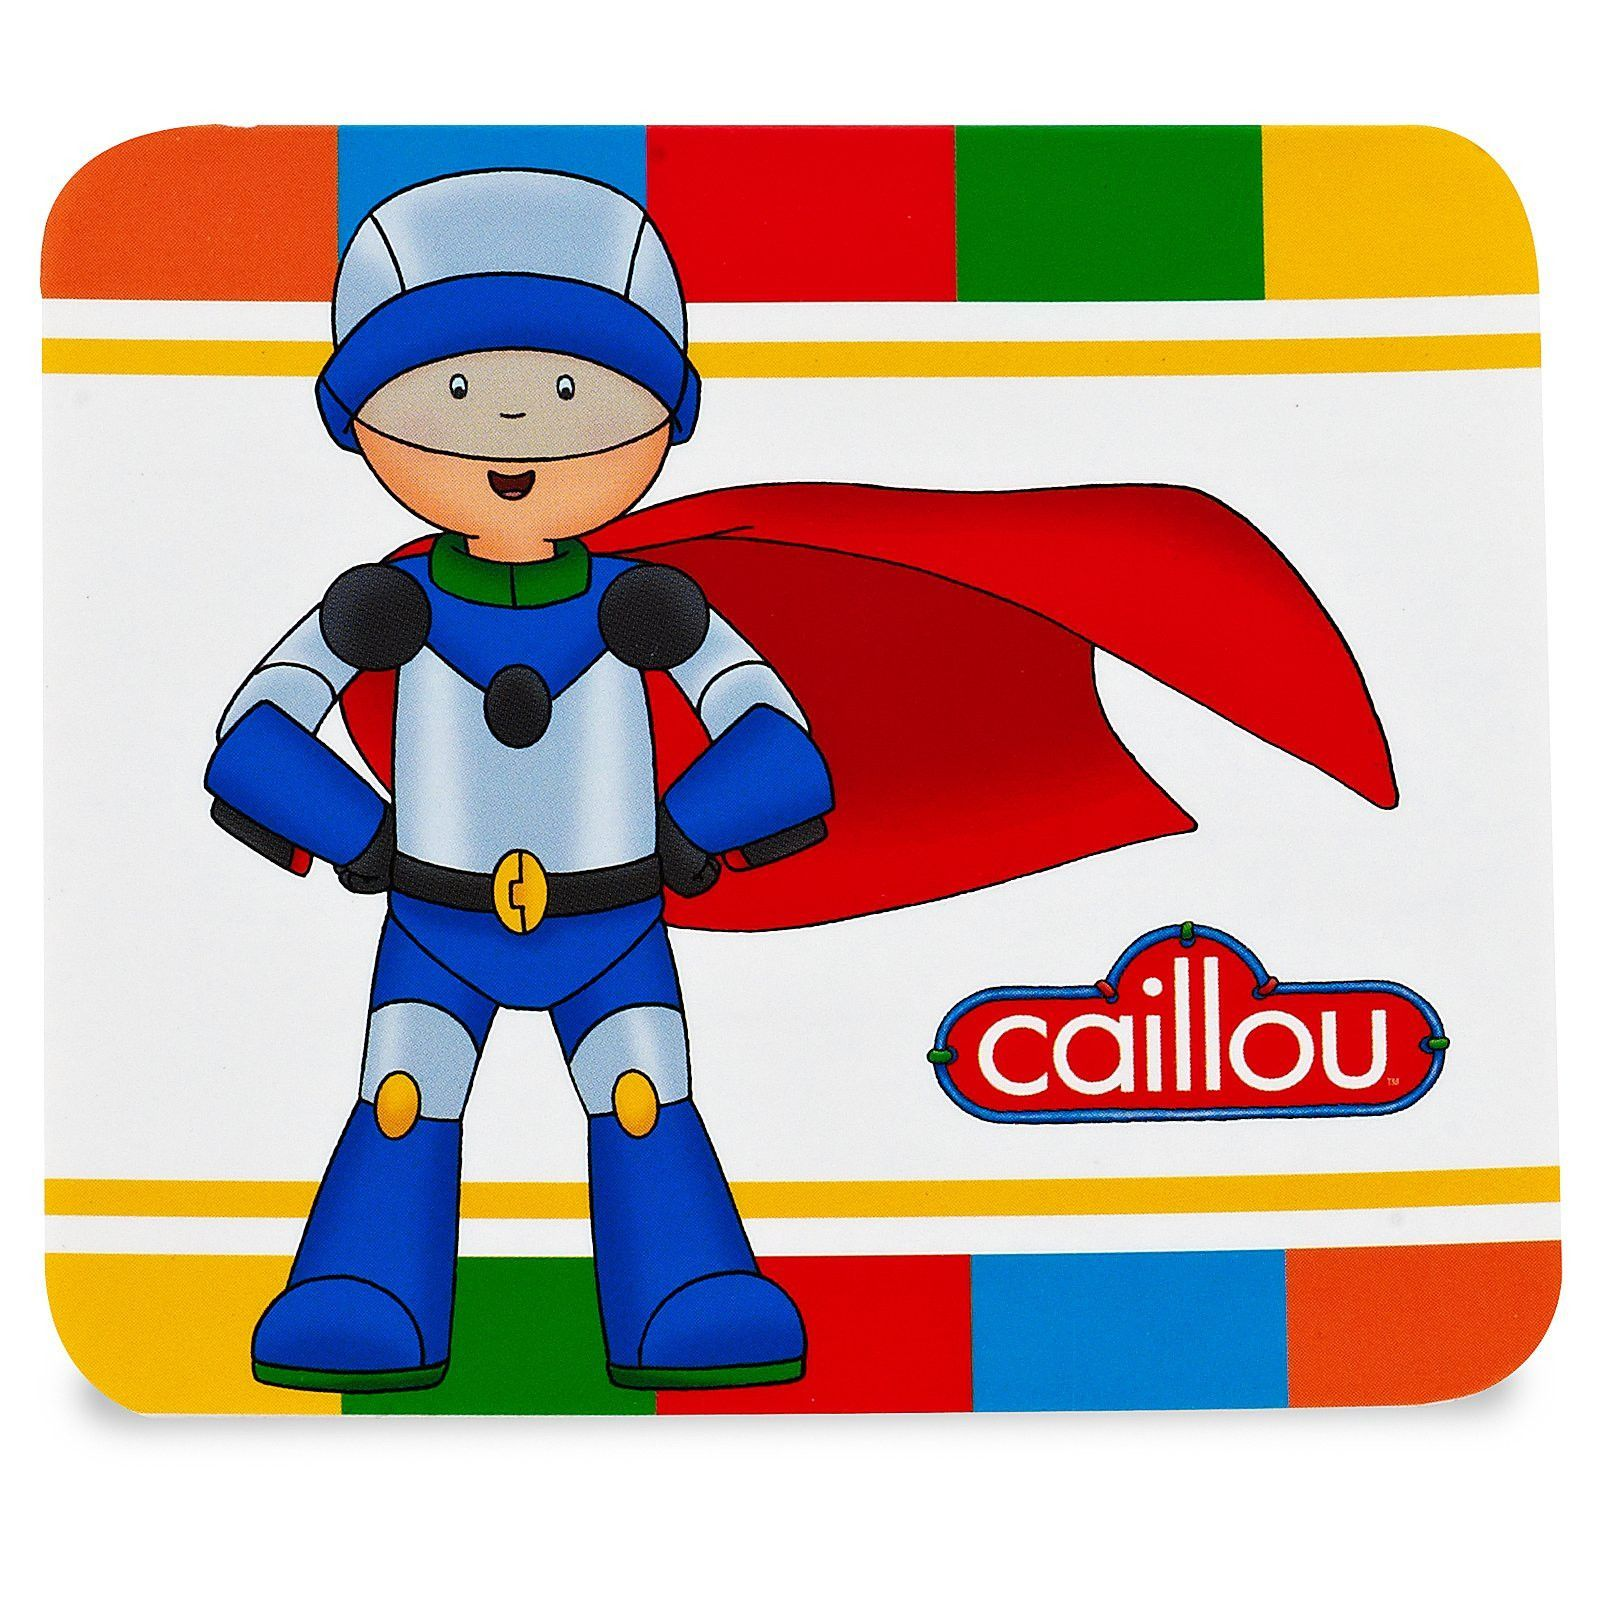 Caillou Notepads | Products | Pinterest | Caillou and Products